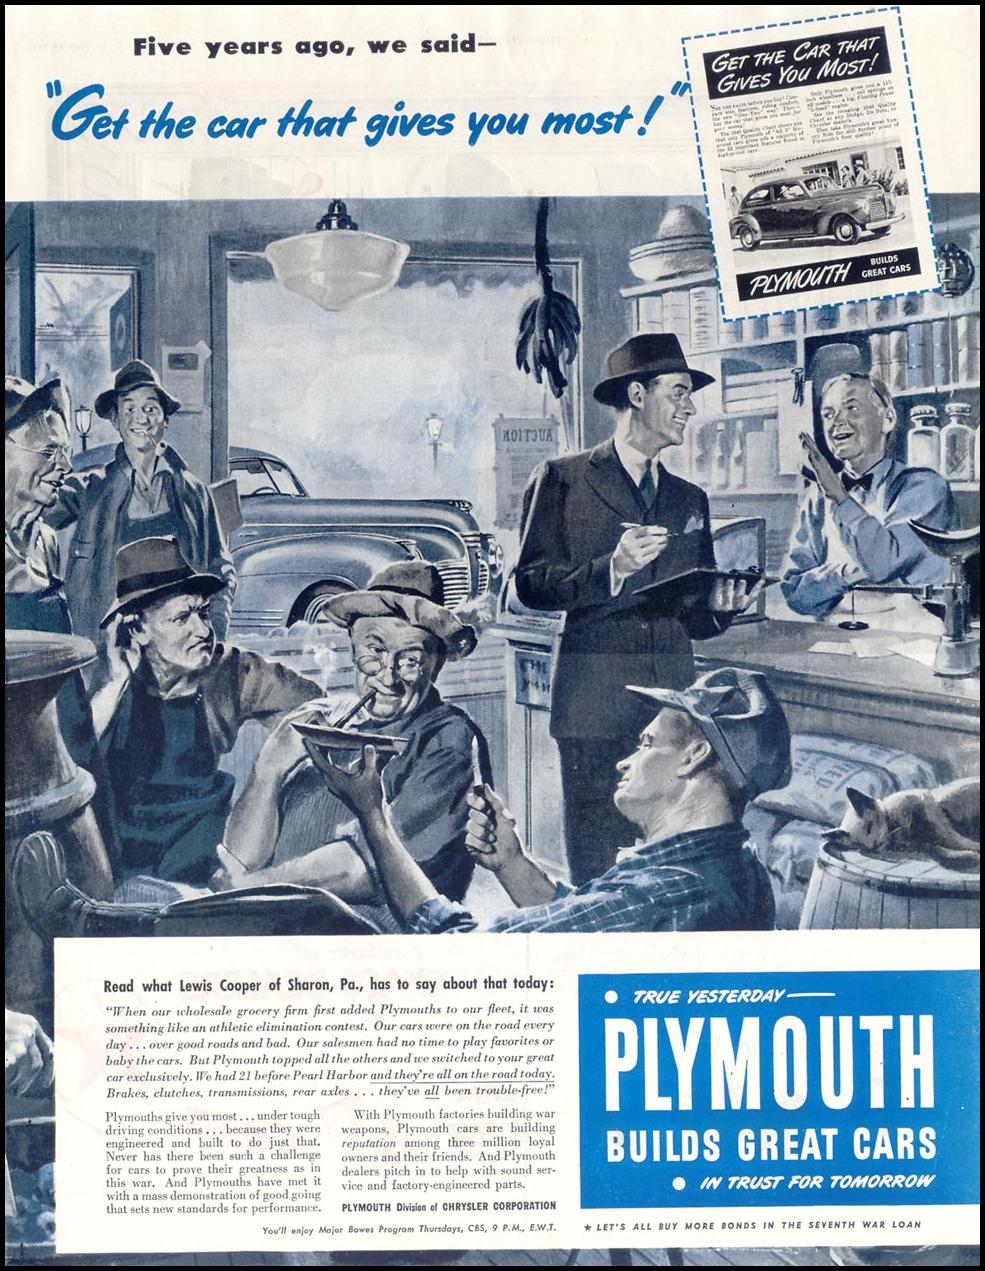 PLYMOUTH AUTOMOBILES SATURDAY EVENING POST 05/19/1945